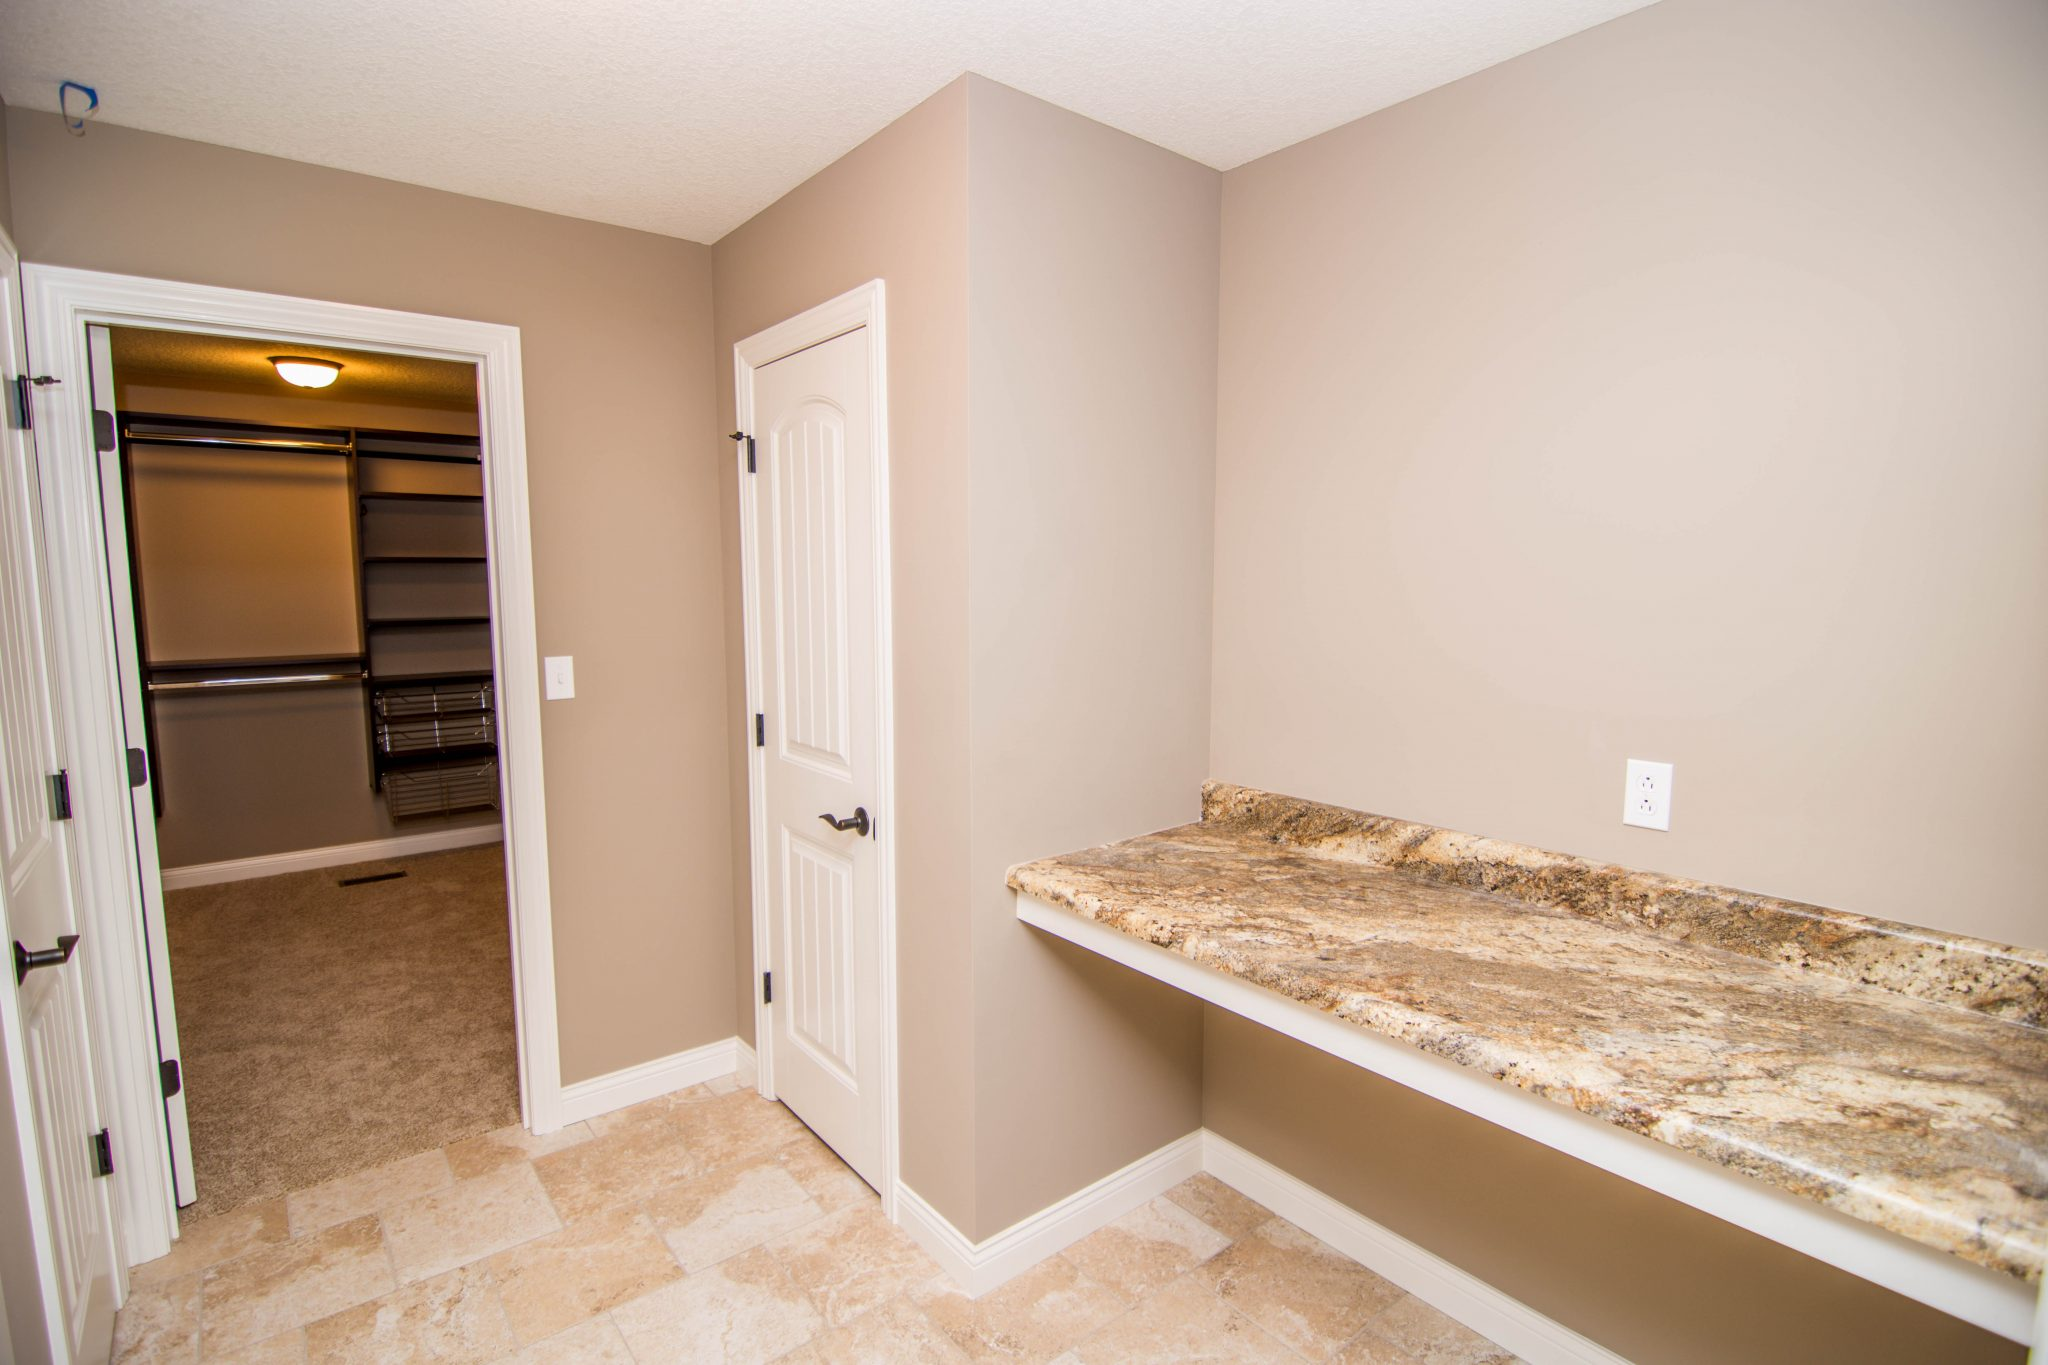 Laundry and Storage in a Custom Home in Columbia, MO